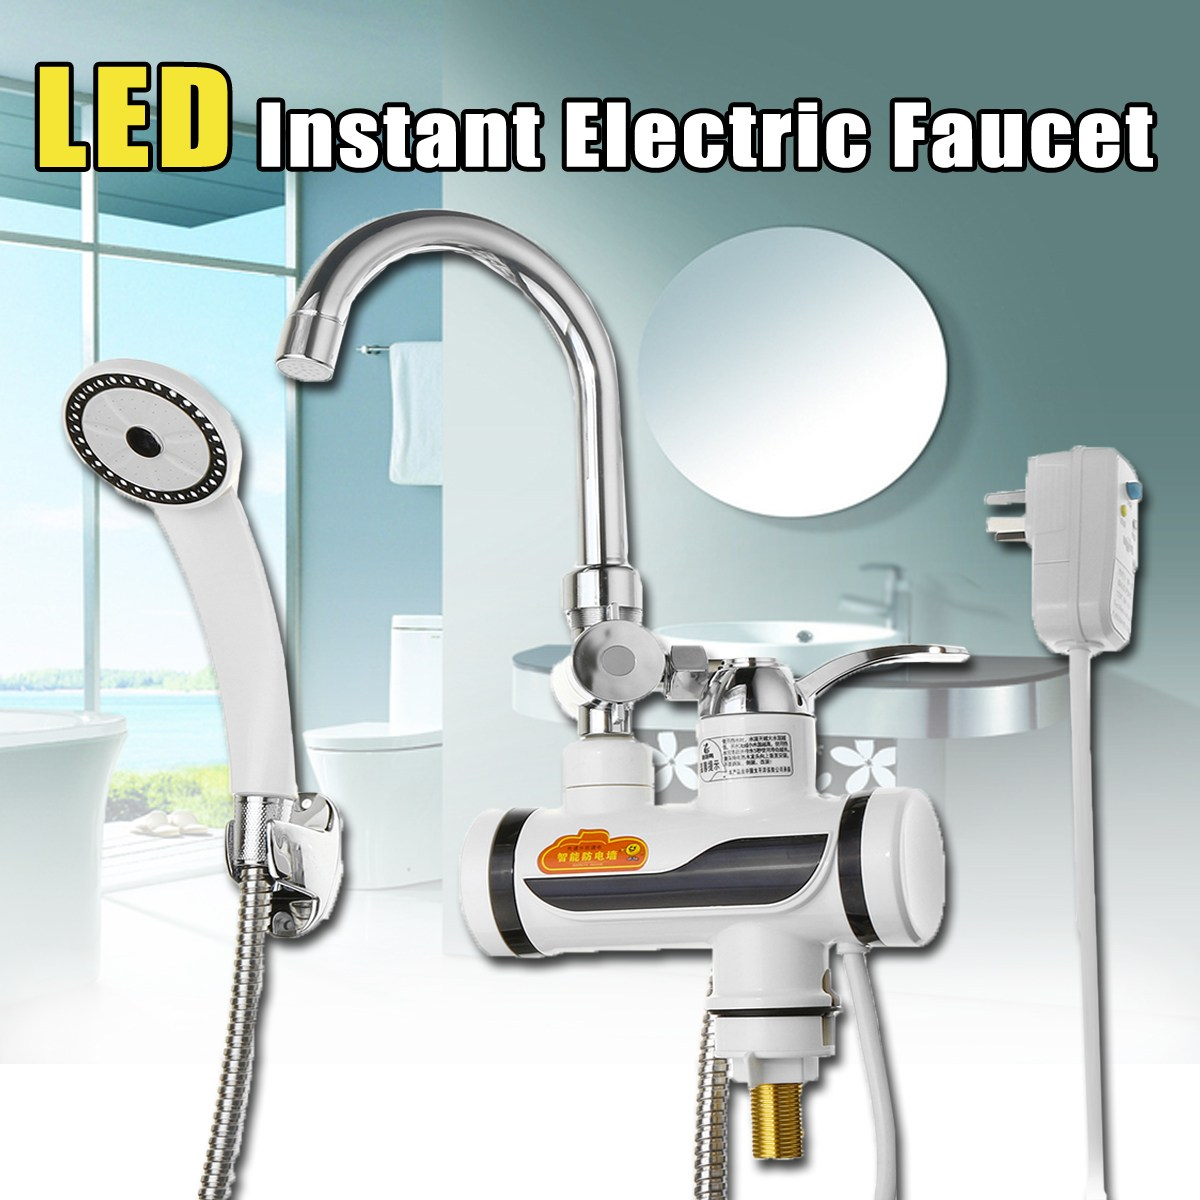 2000 3000W 220V Kitchen LED Instant Electric Water Heater Fast ...